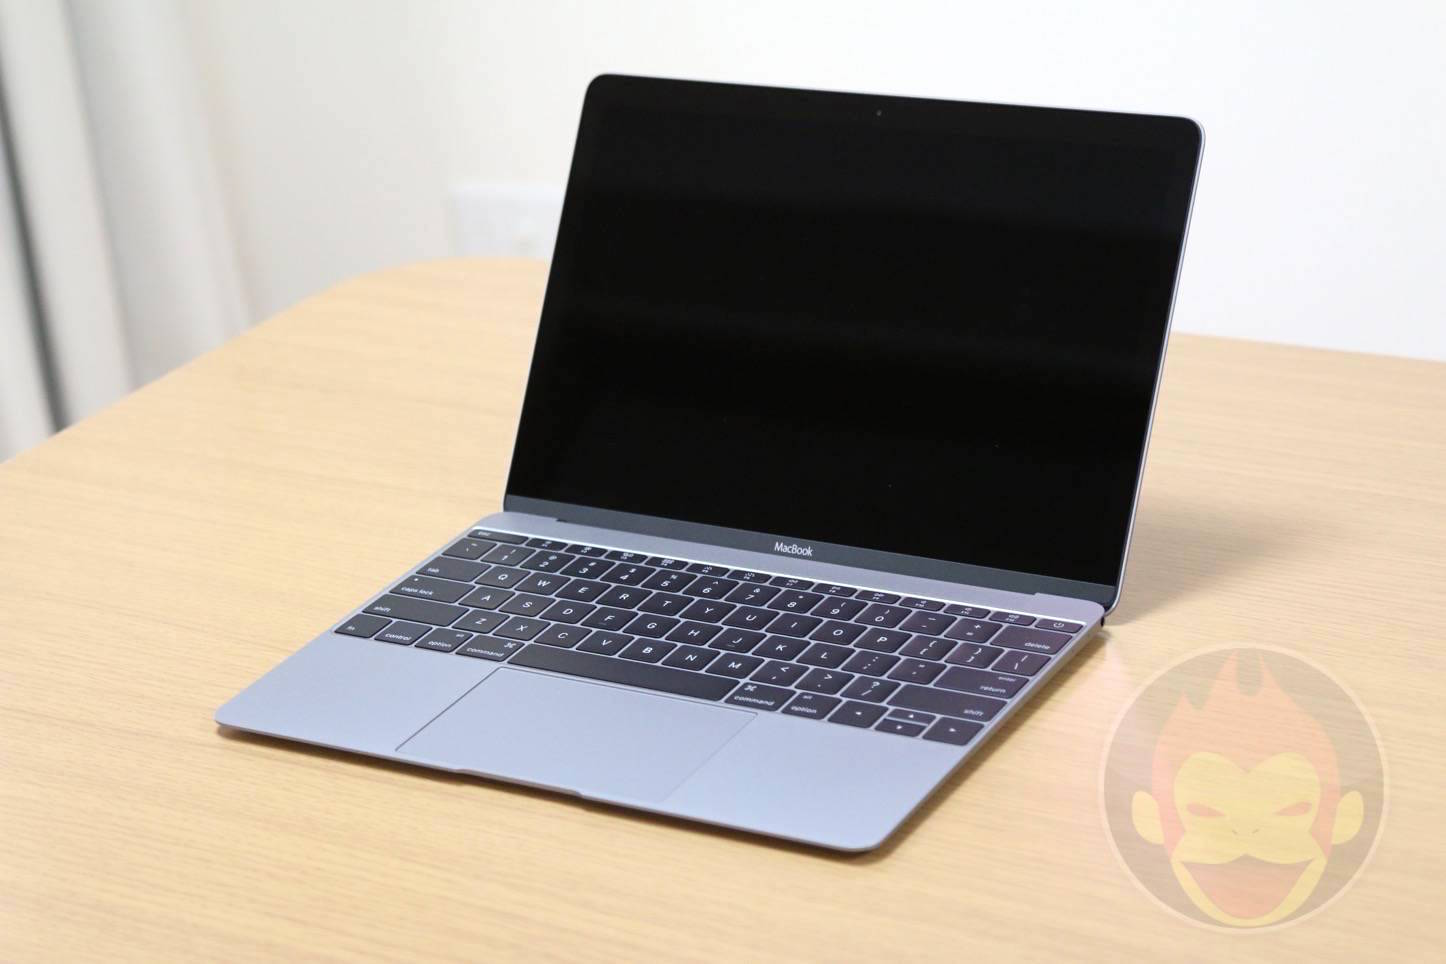 12inch-The-New-MacBook-69.JPG